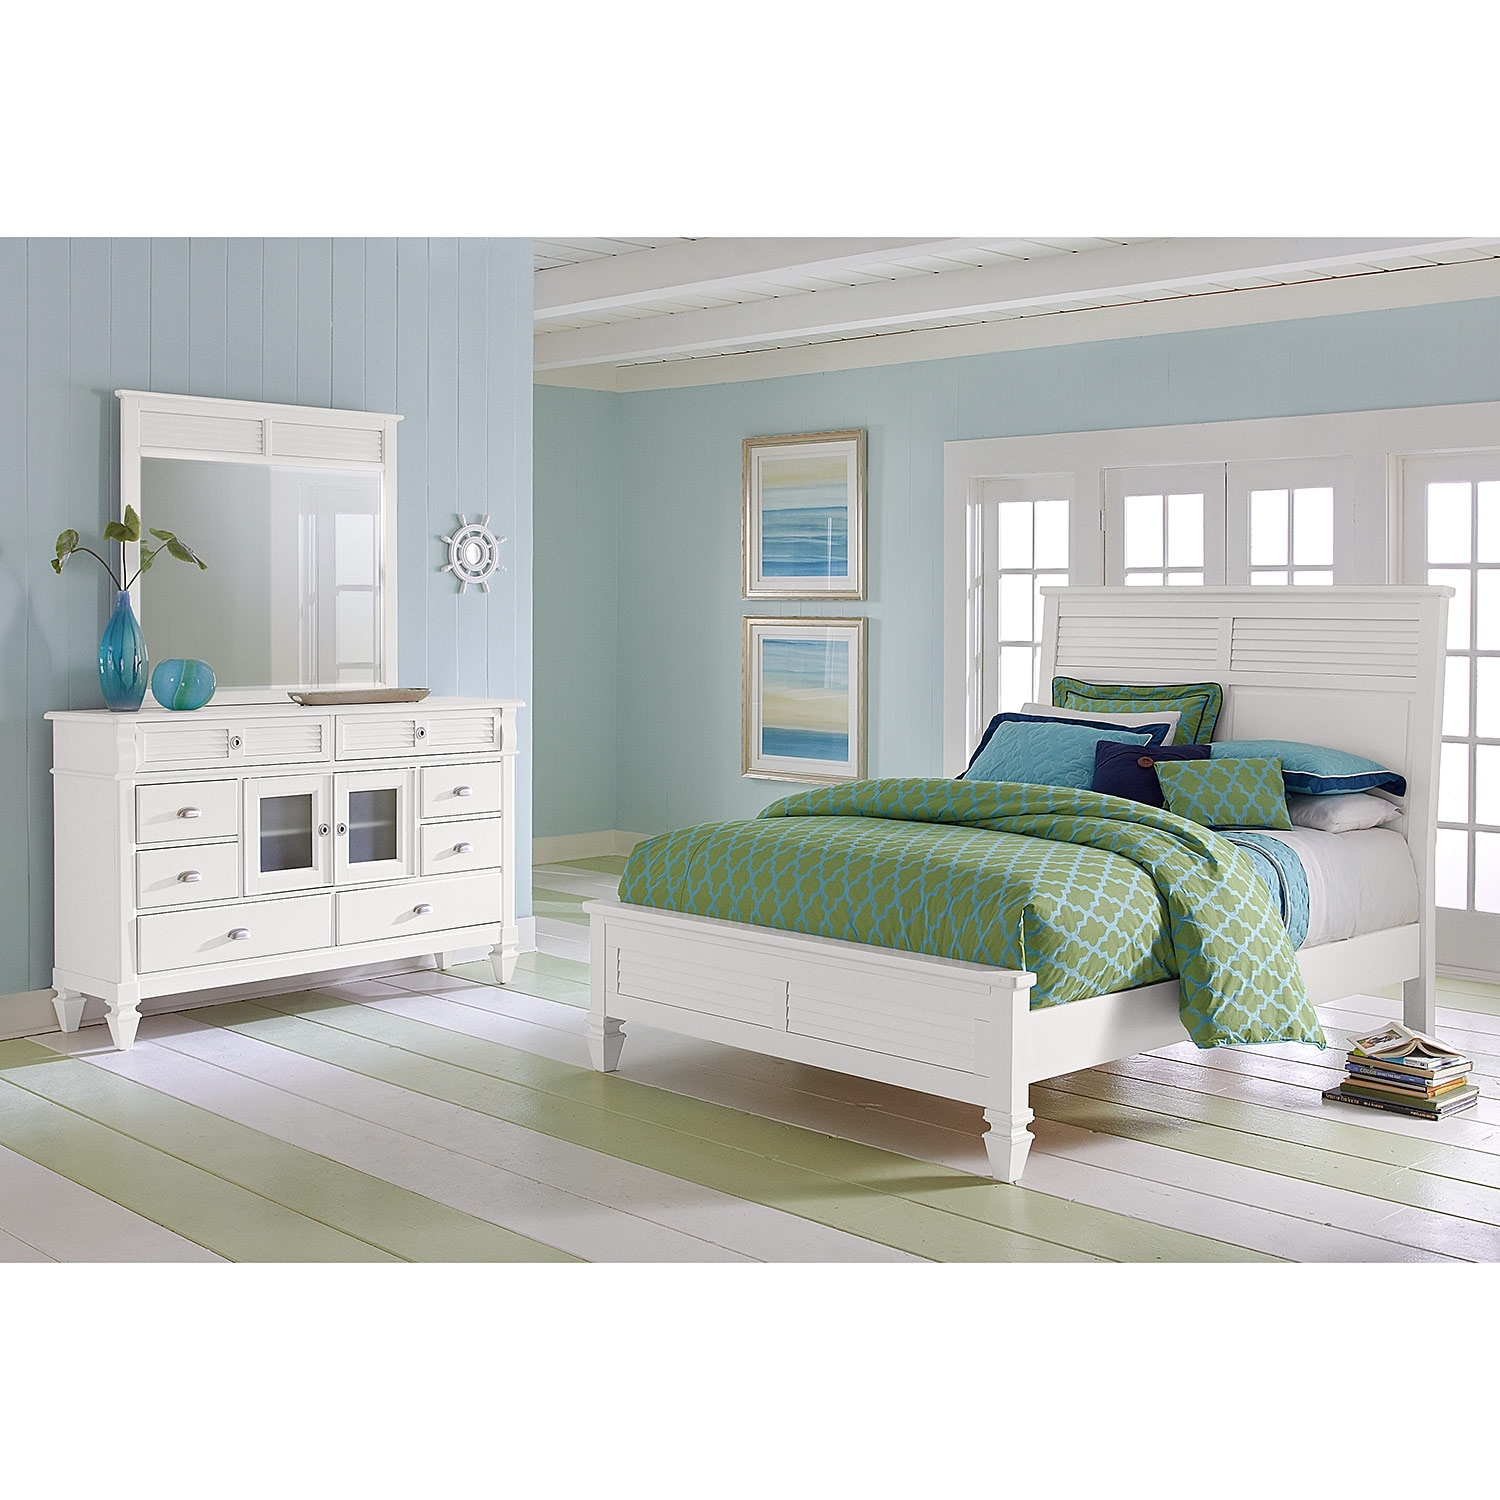 Charleston Bay White Bedroom 5 Pc. Queen Bedroom